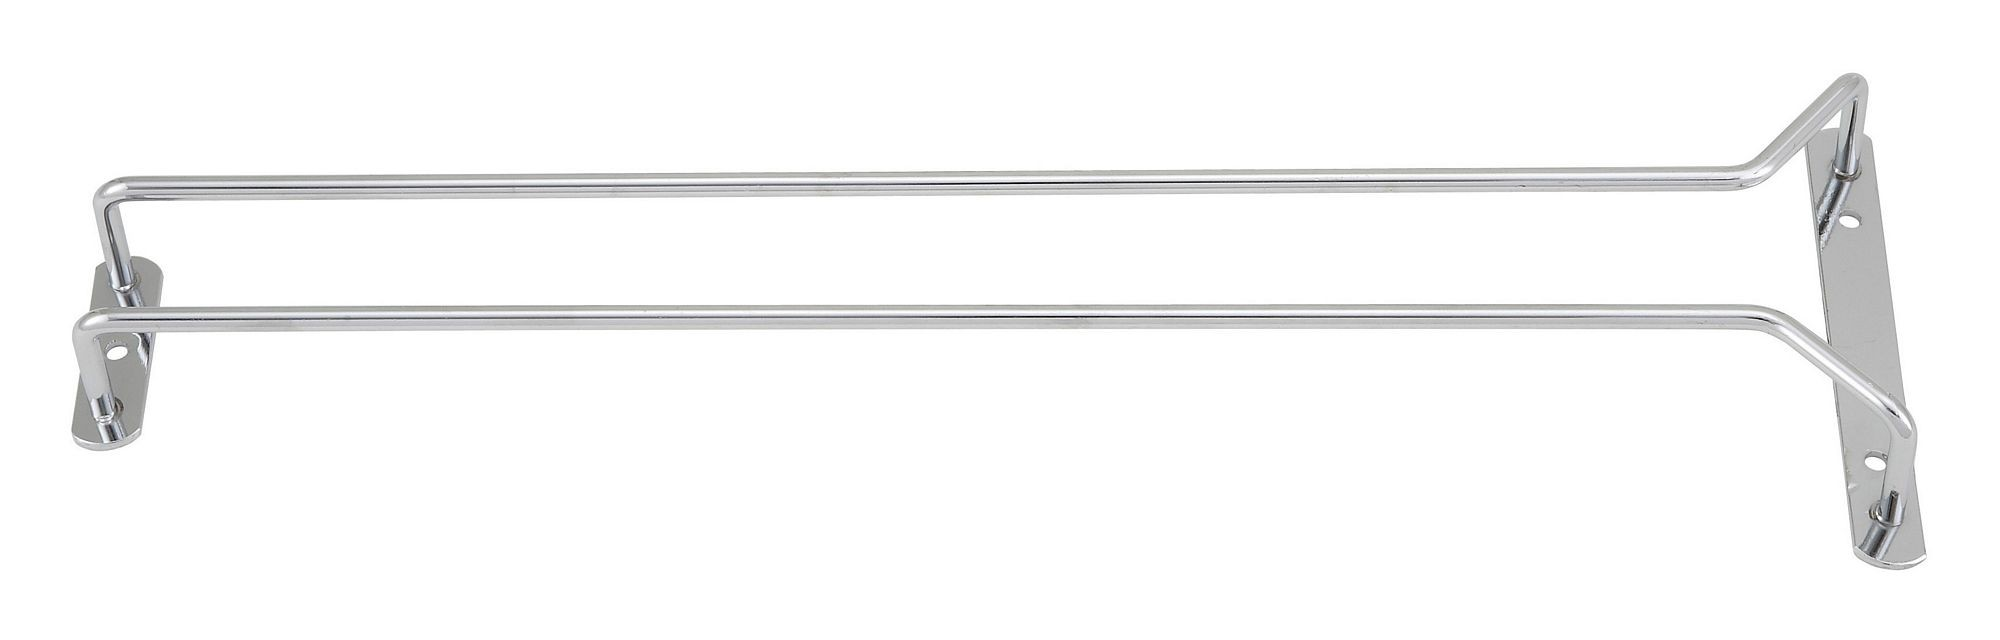 Winco GHC-16 Chrome-Plated Wire Glass Hanger Rack 16""